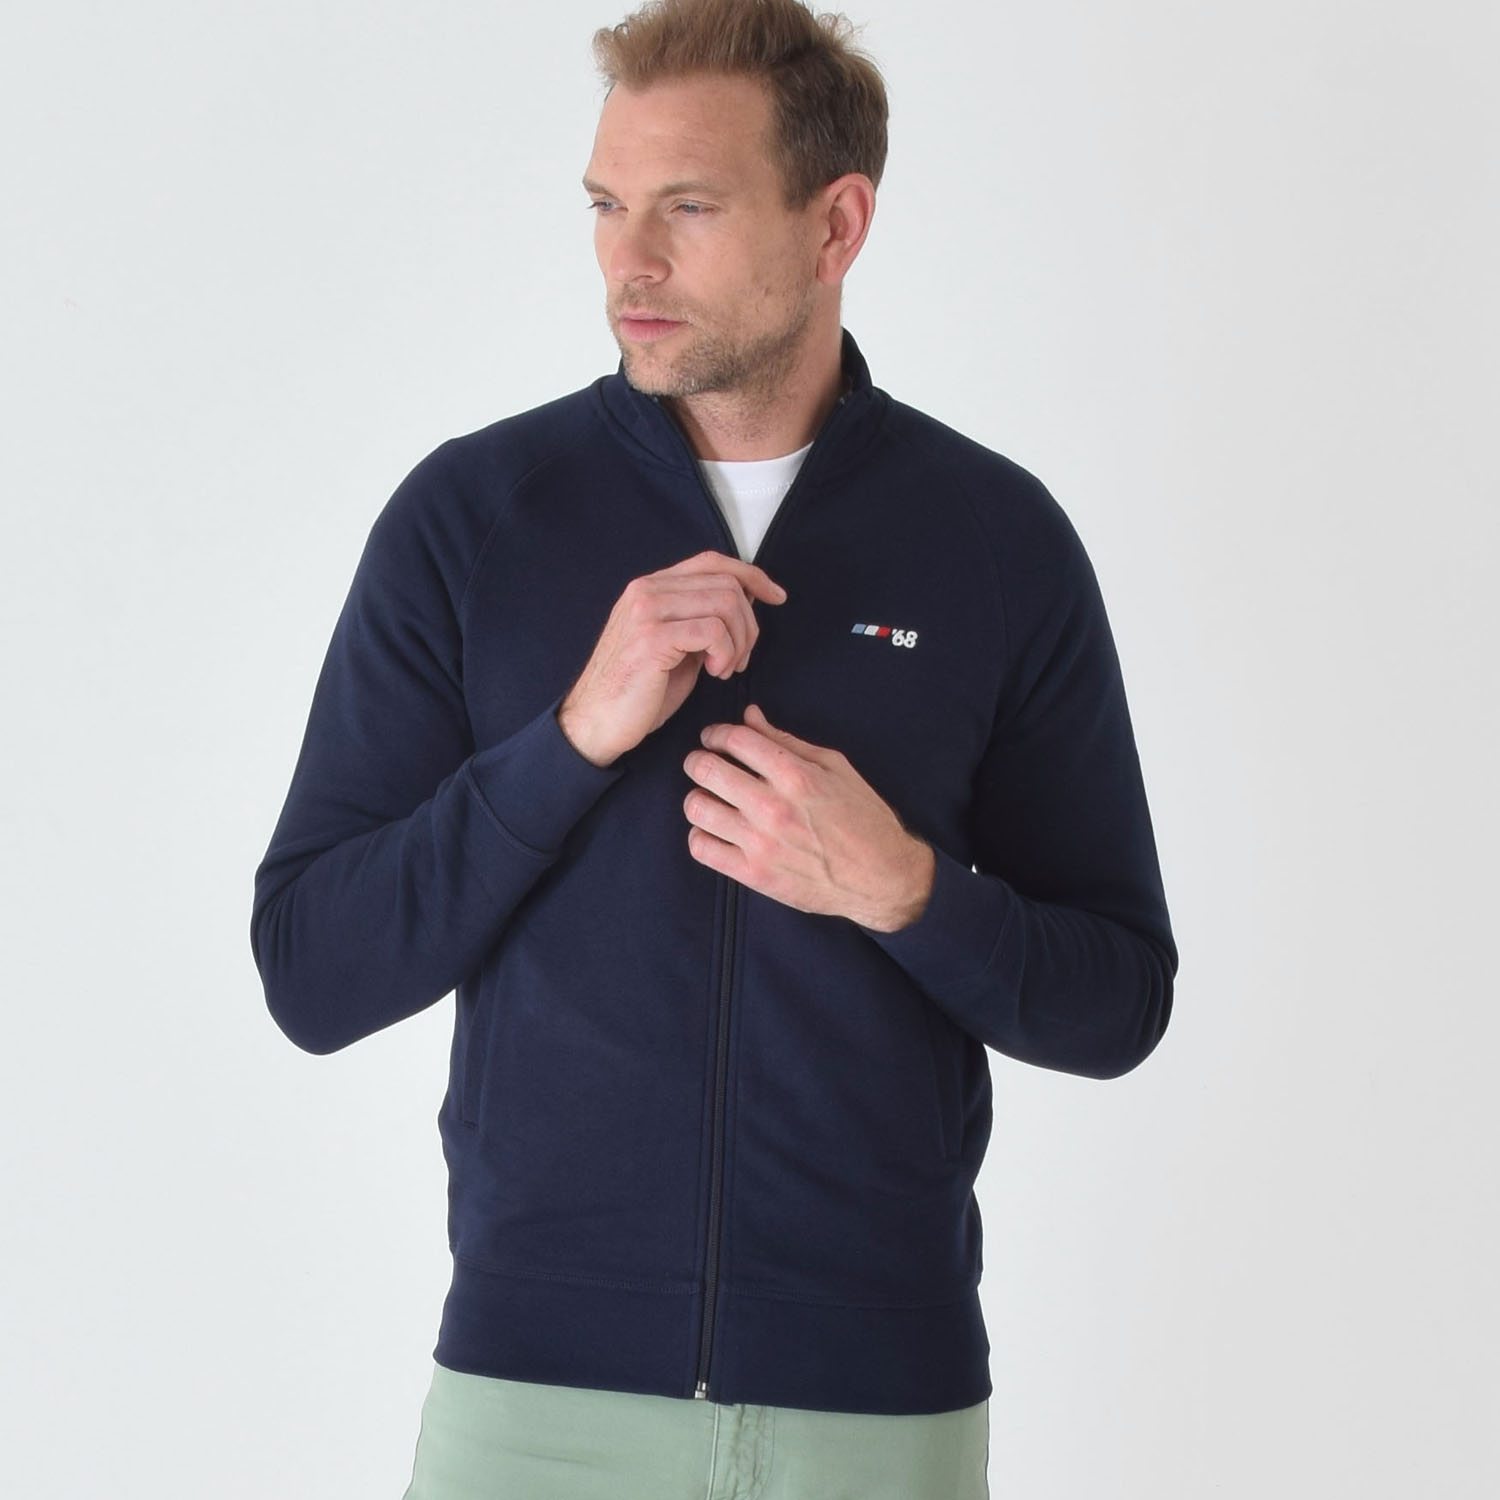 T-lab-Grenoble'68-mens-zipped-fleece-navy